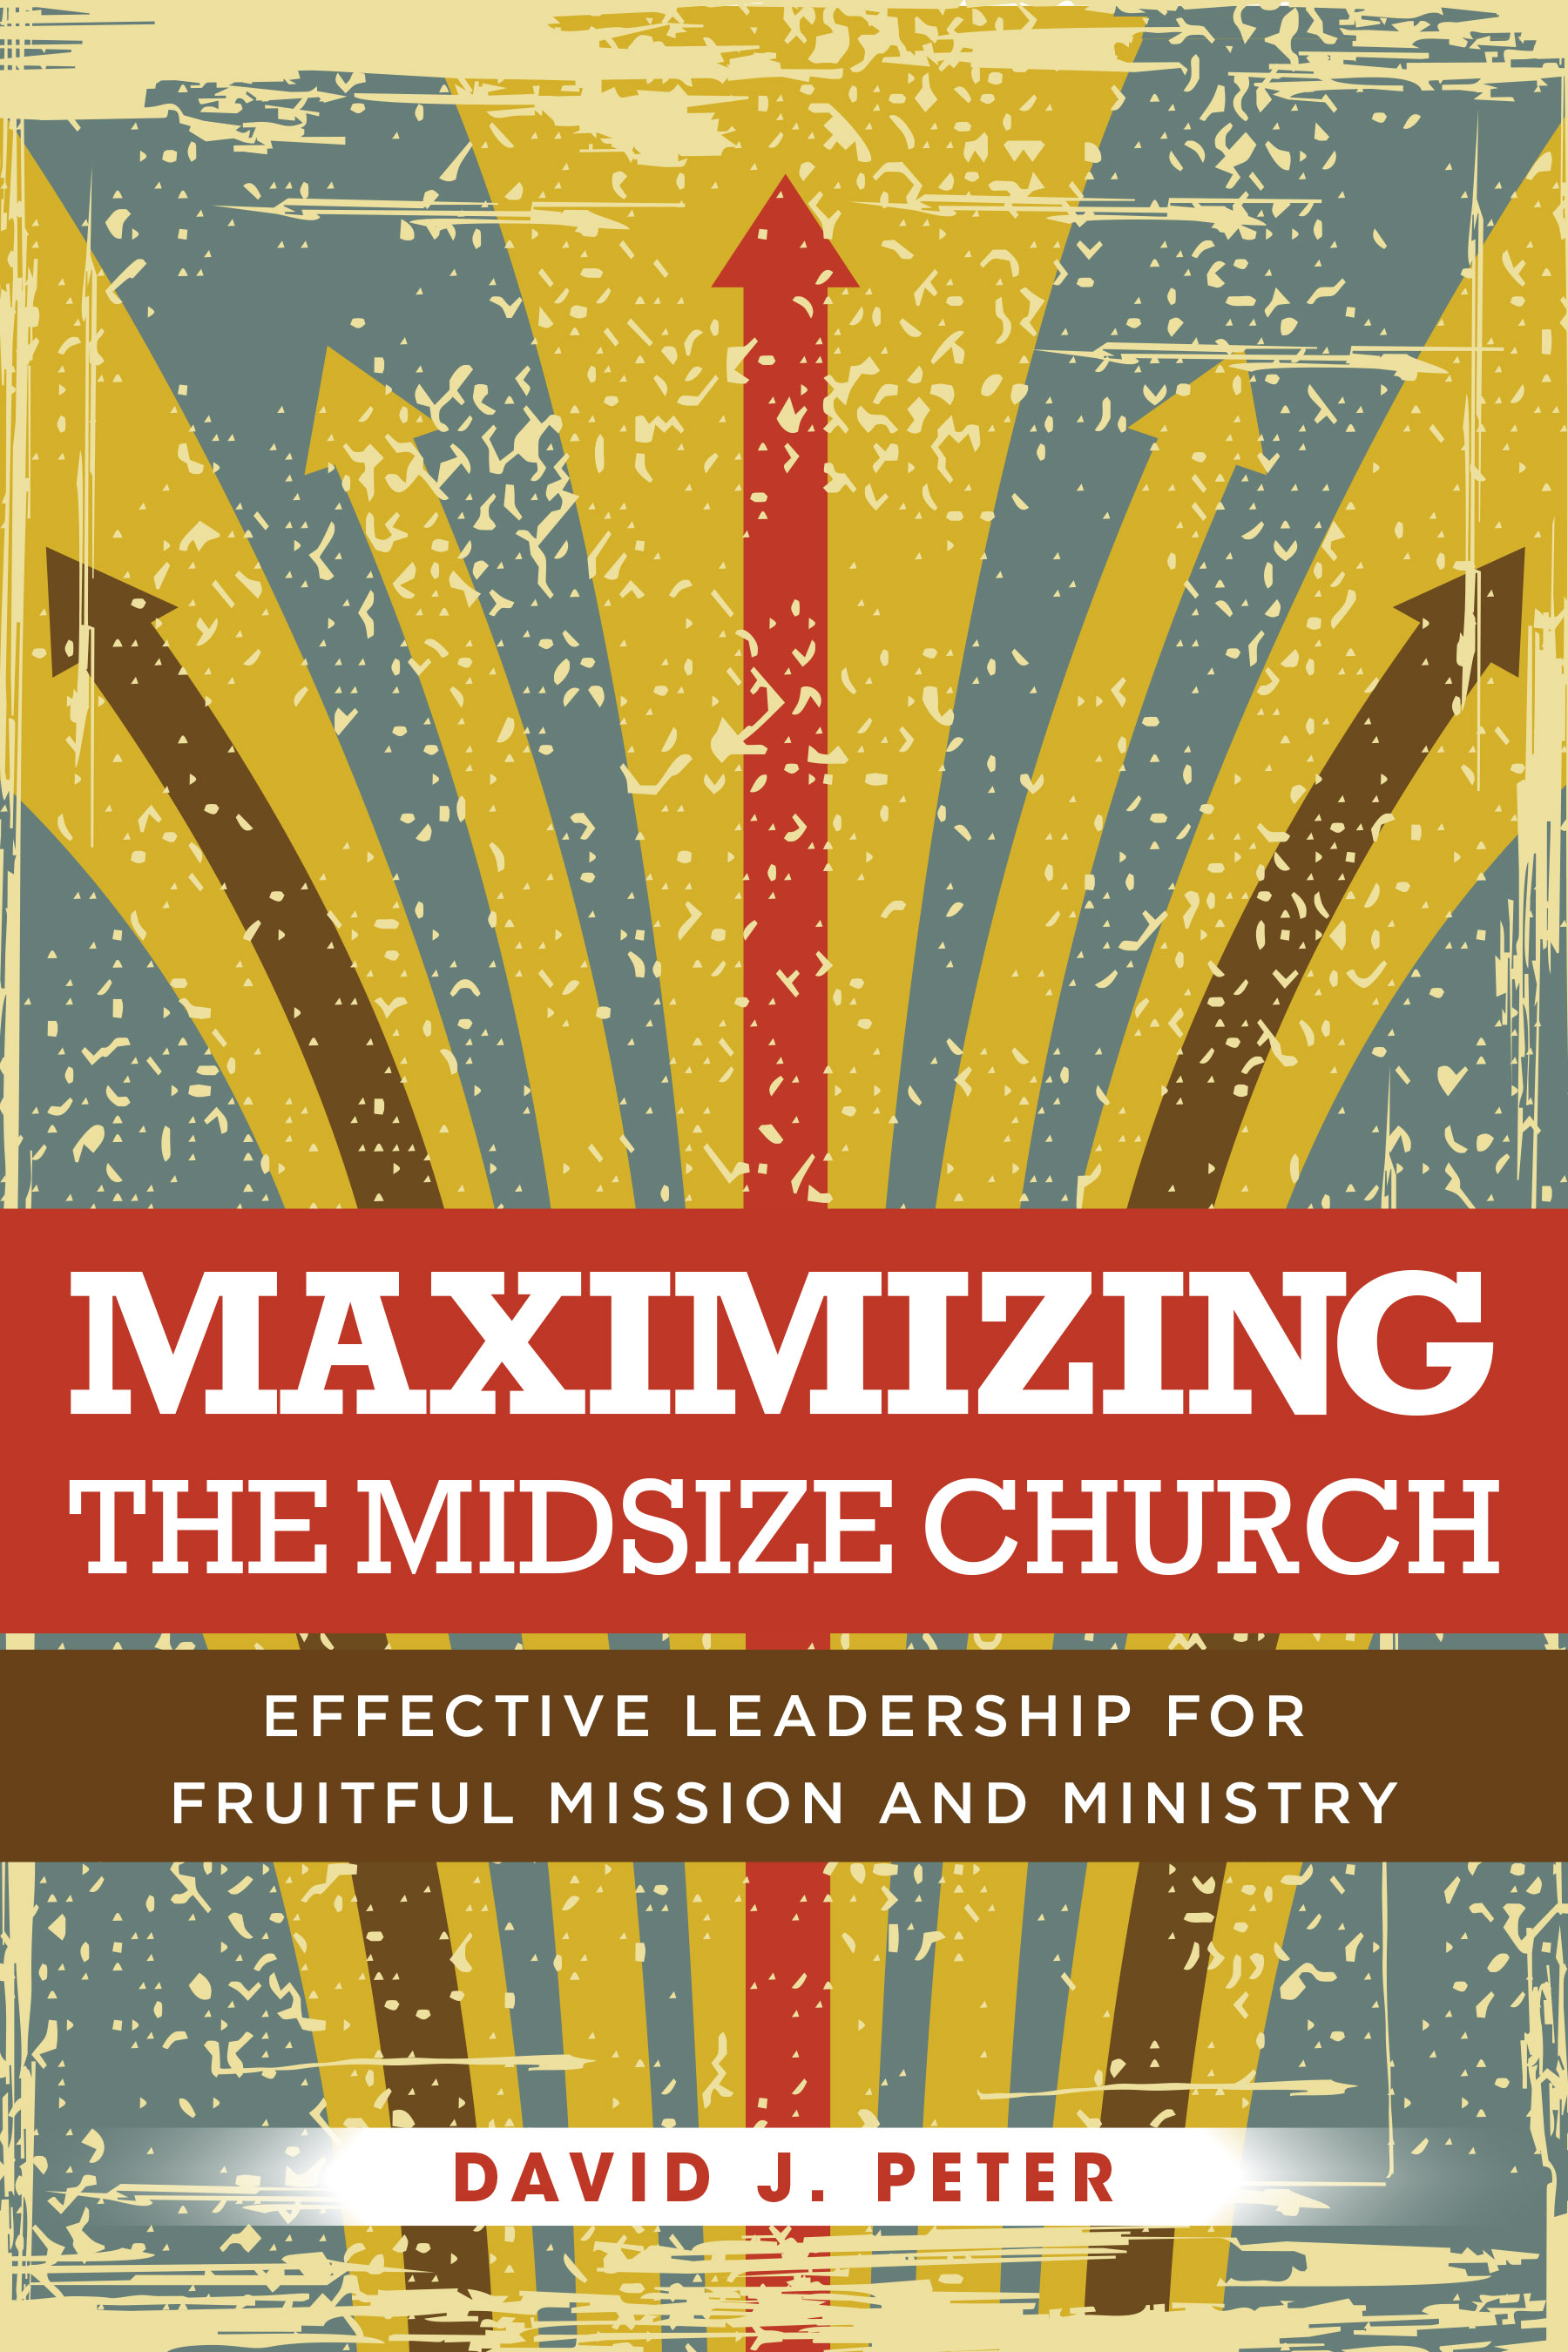 Book Blurbs: David Peter, Maximizing the Midsize Church